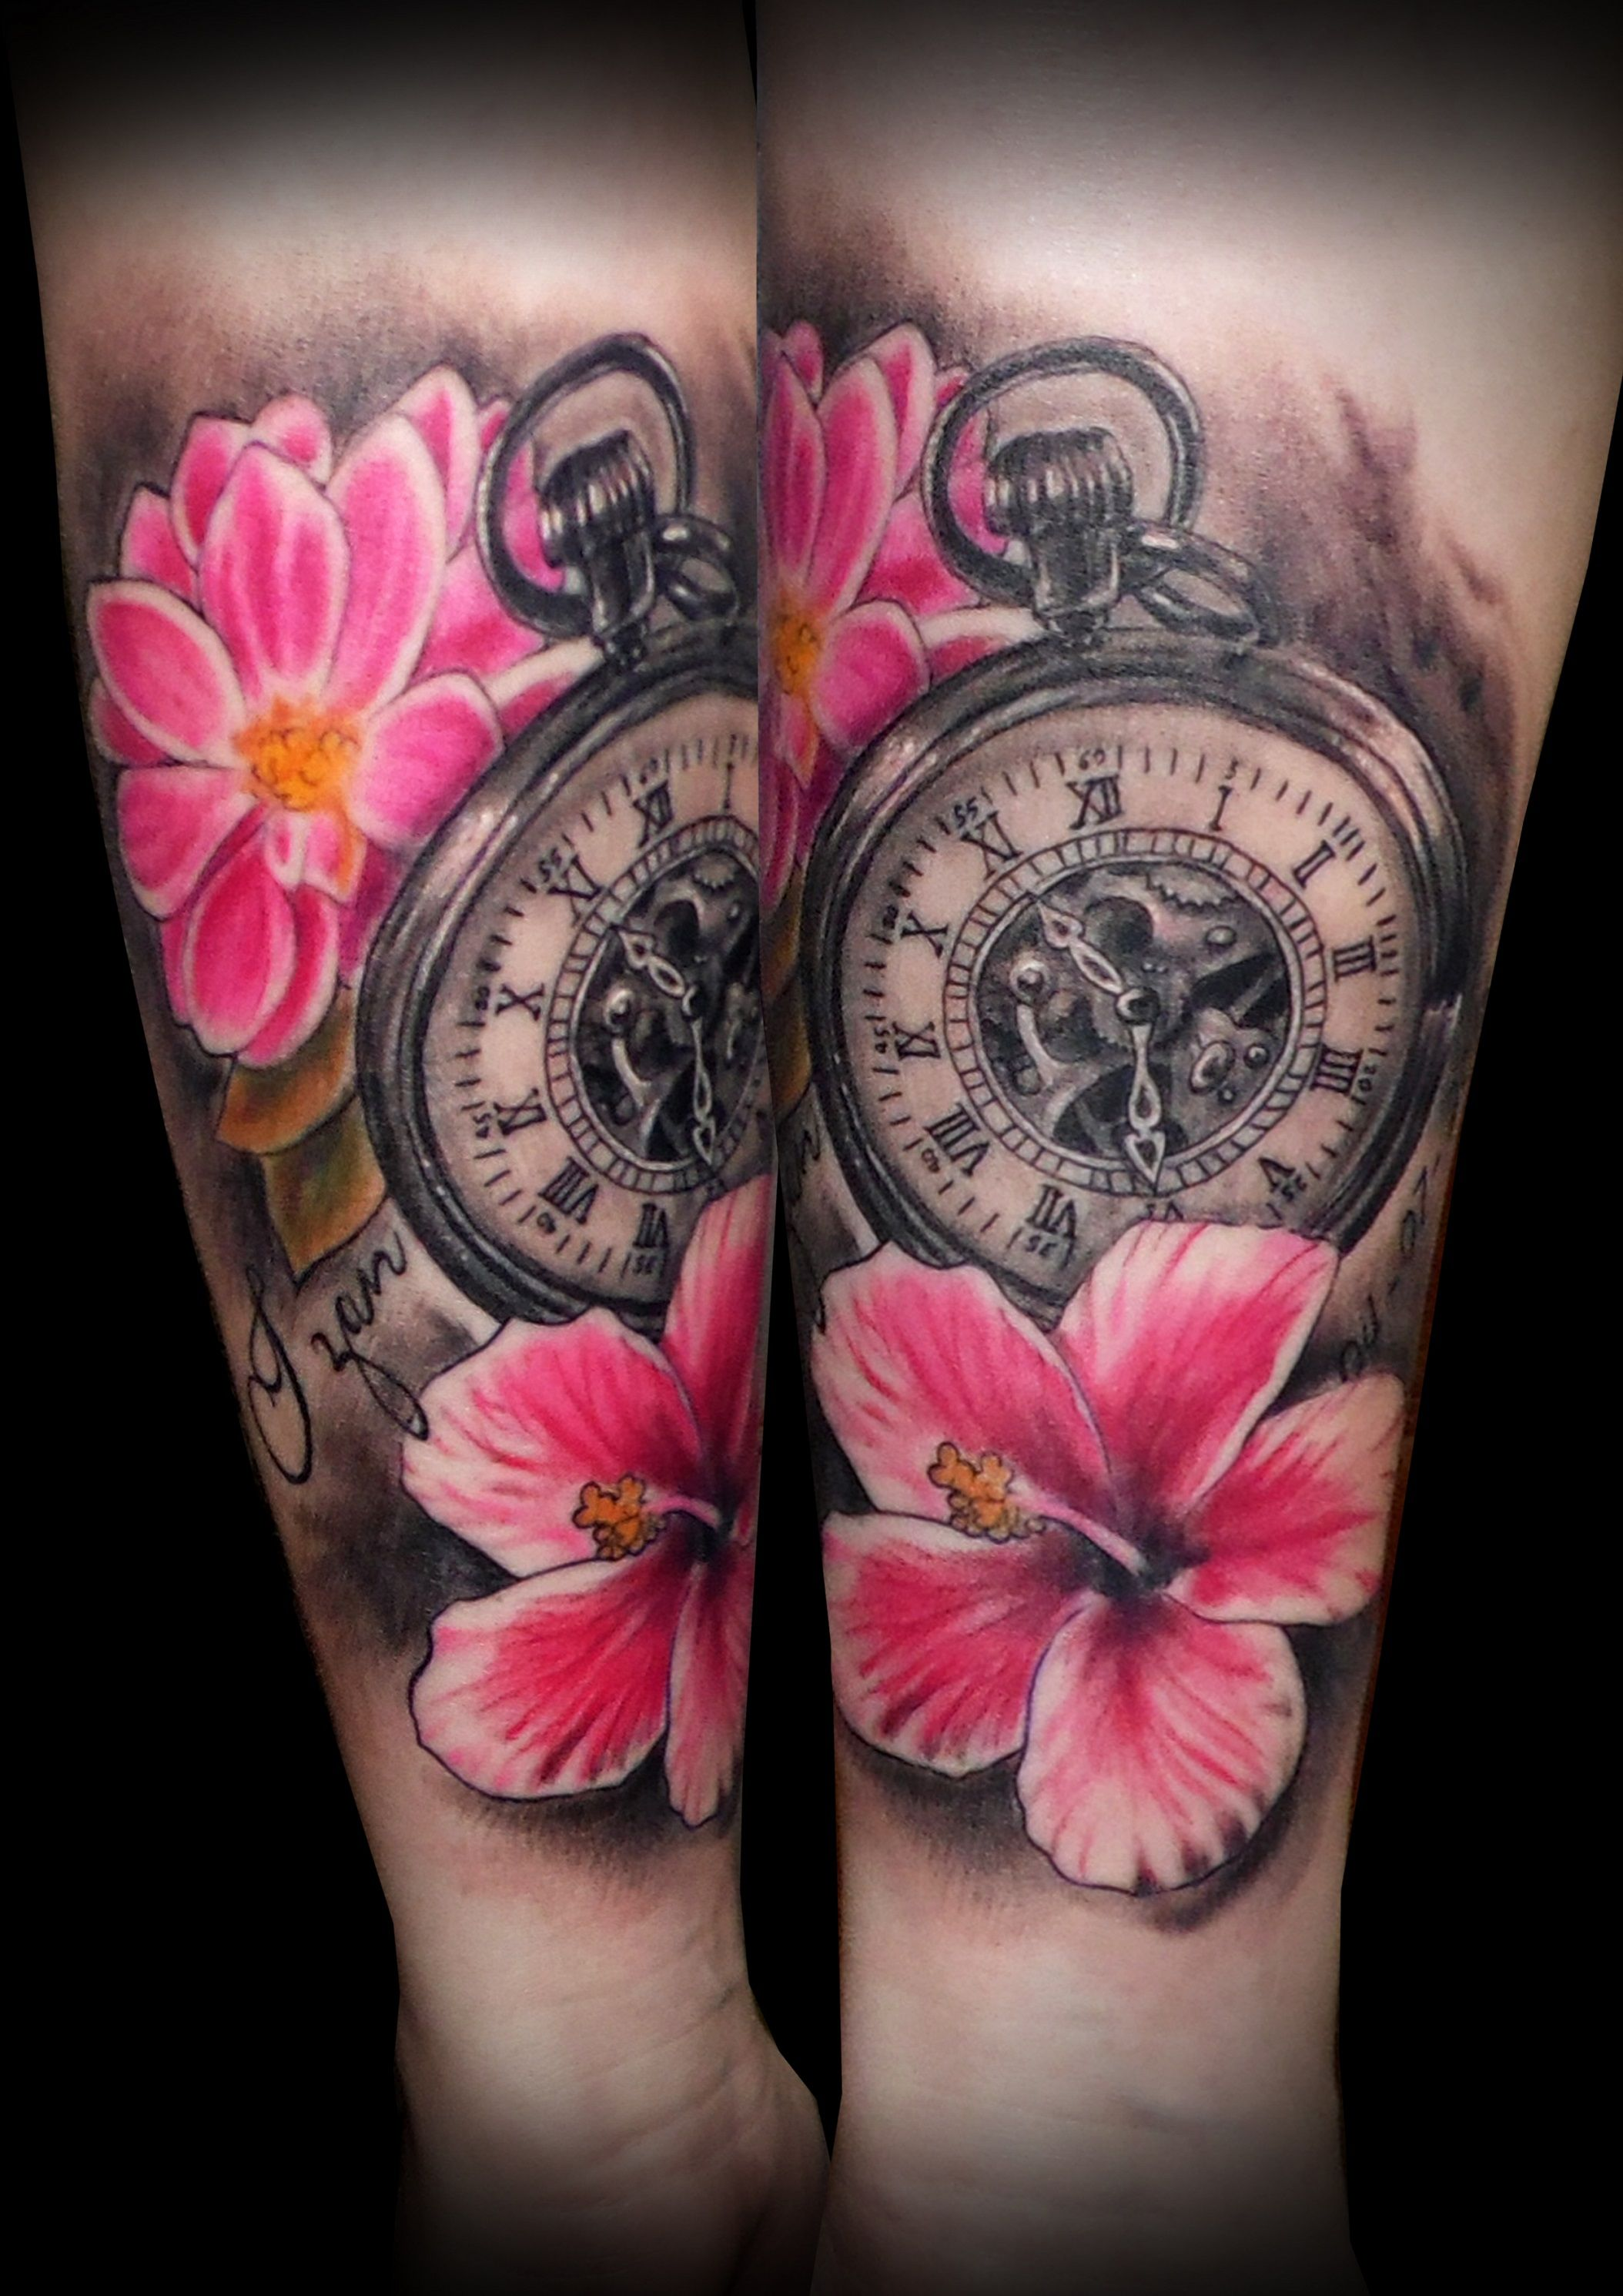 Tatuaje Tattoo Flores Color Reloj Antebrazo 13depicas Mis Tattoos